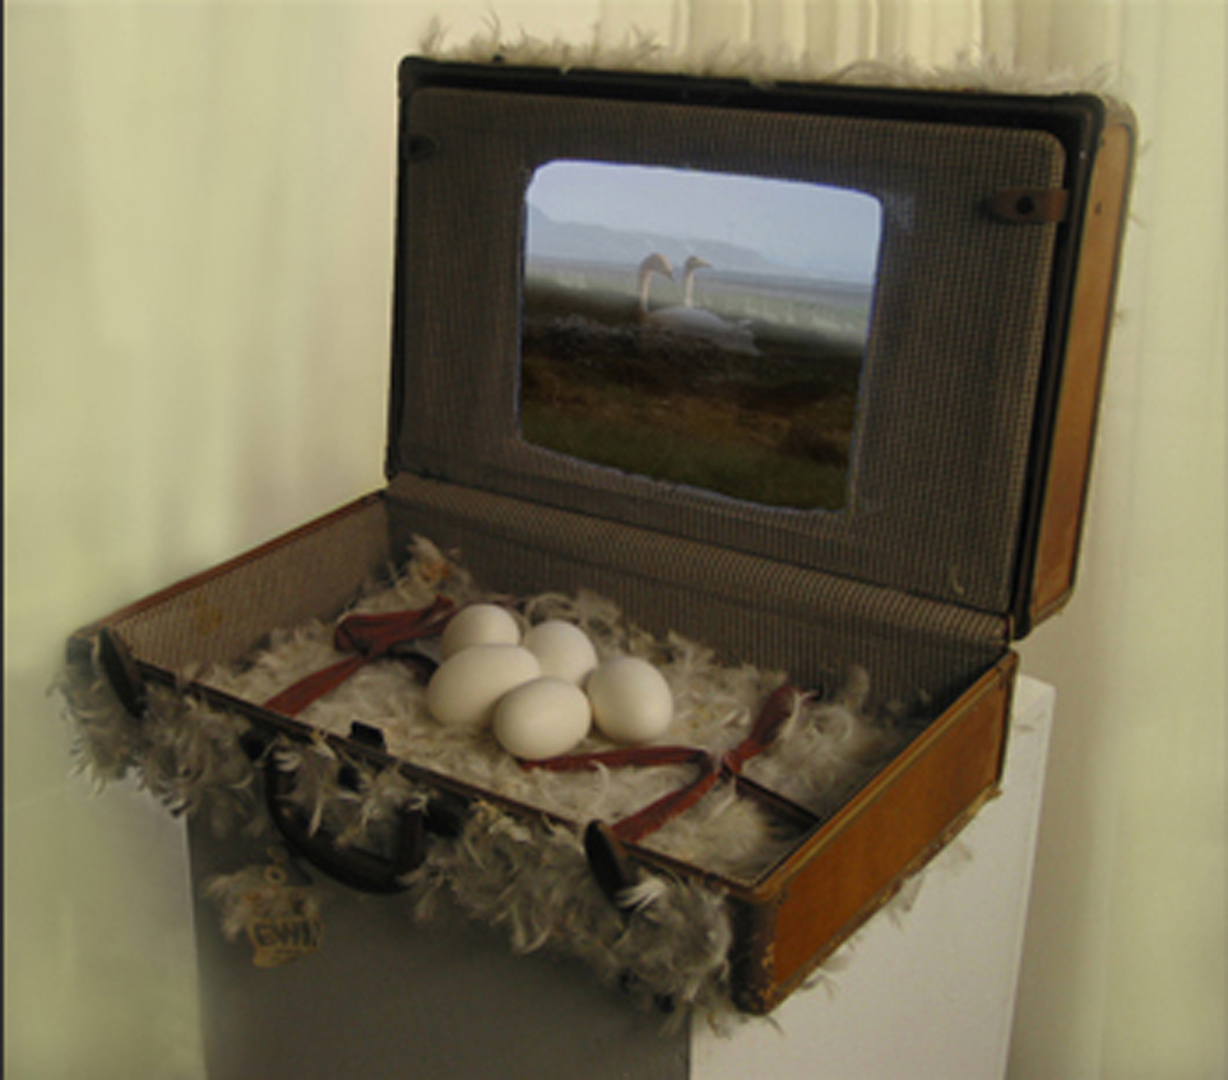 ©2011, Tina Aufiero, Swan in a suitcase